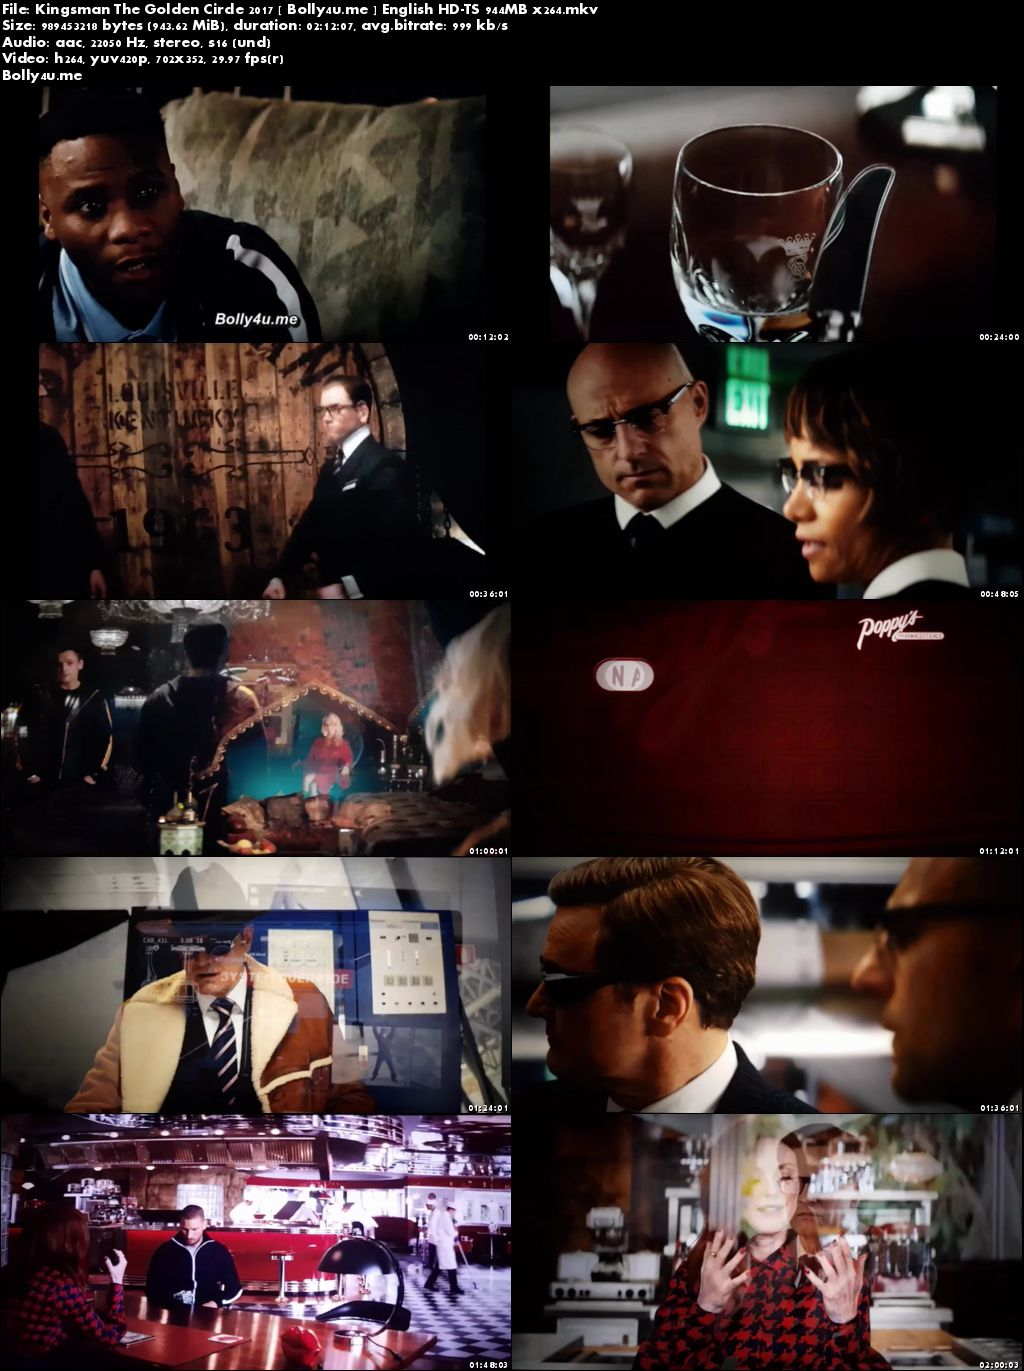 Kingsman The Golden Circle 2017 HDTS 900MB English x264 Download